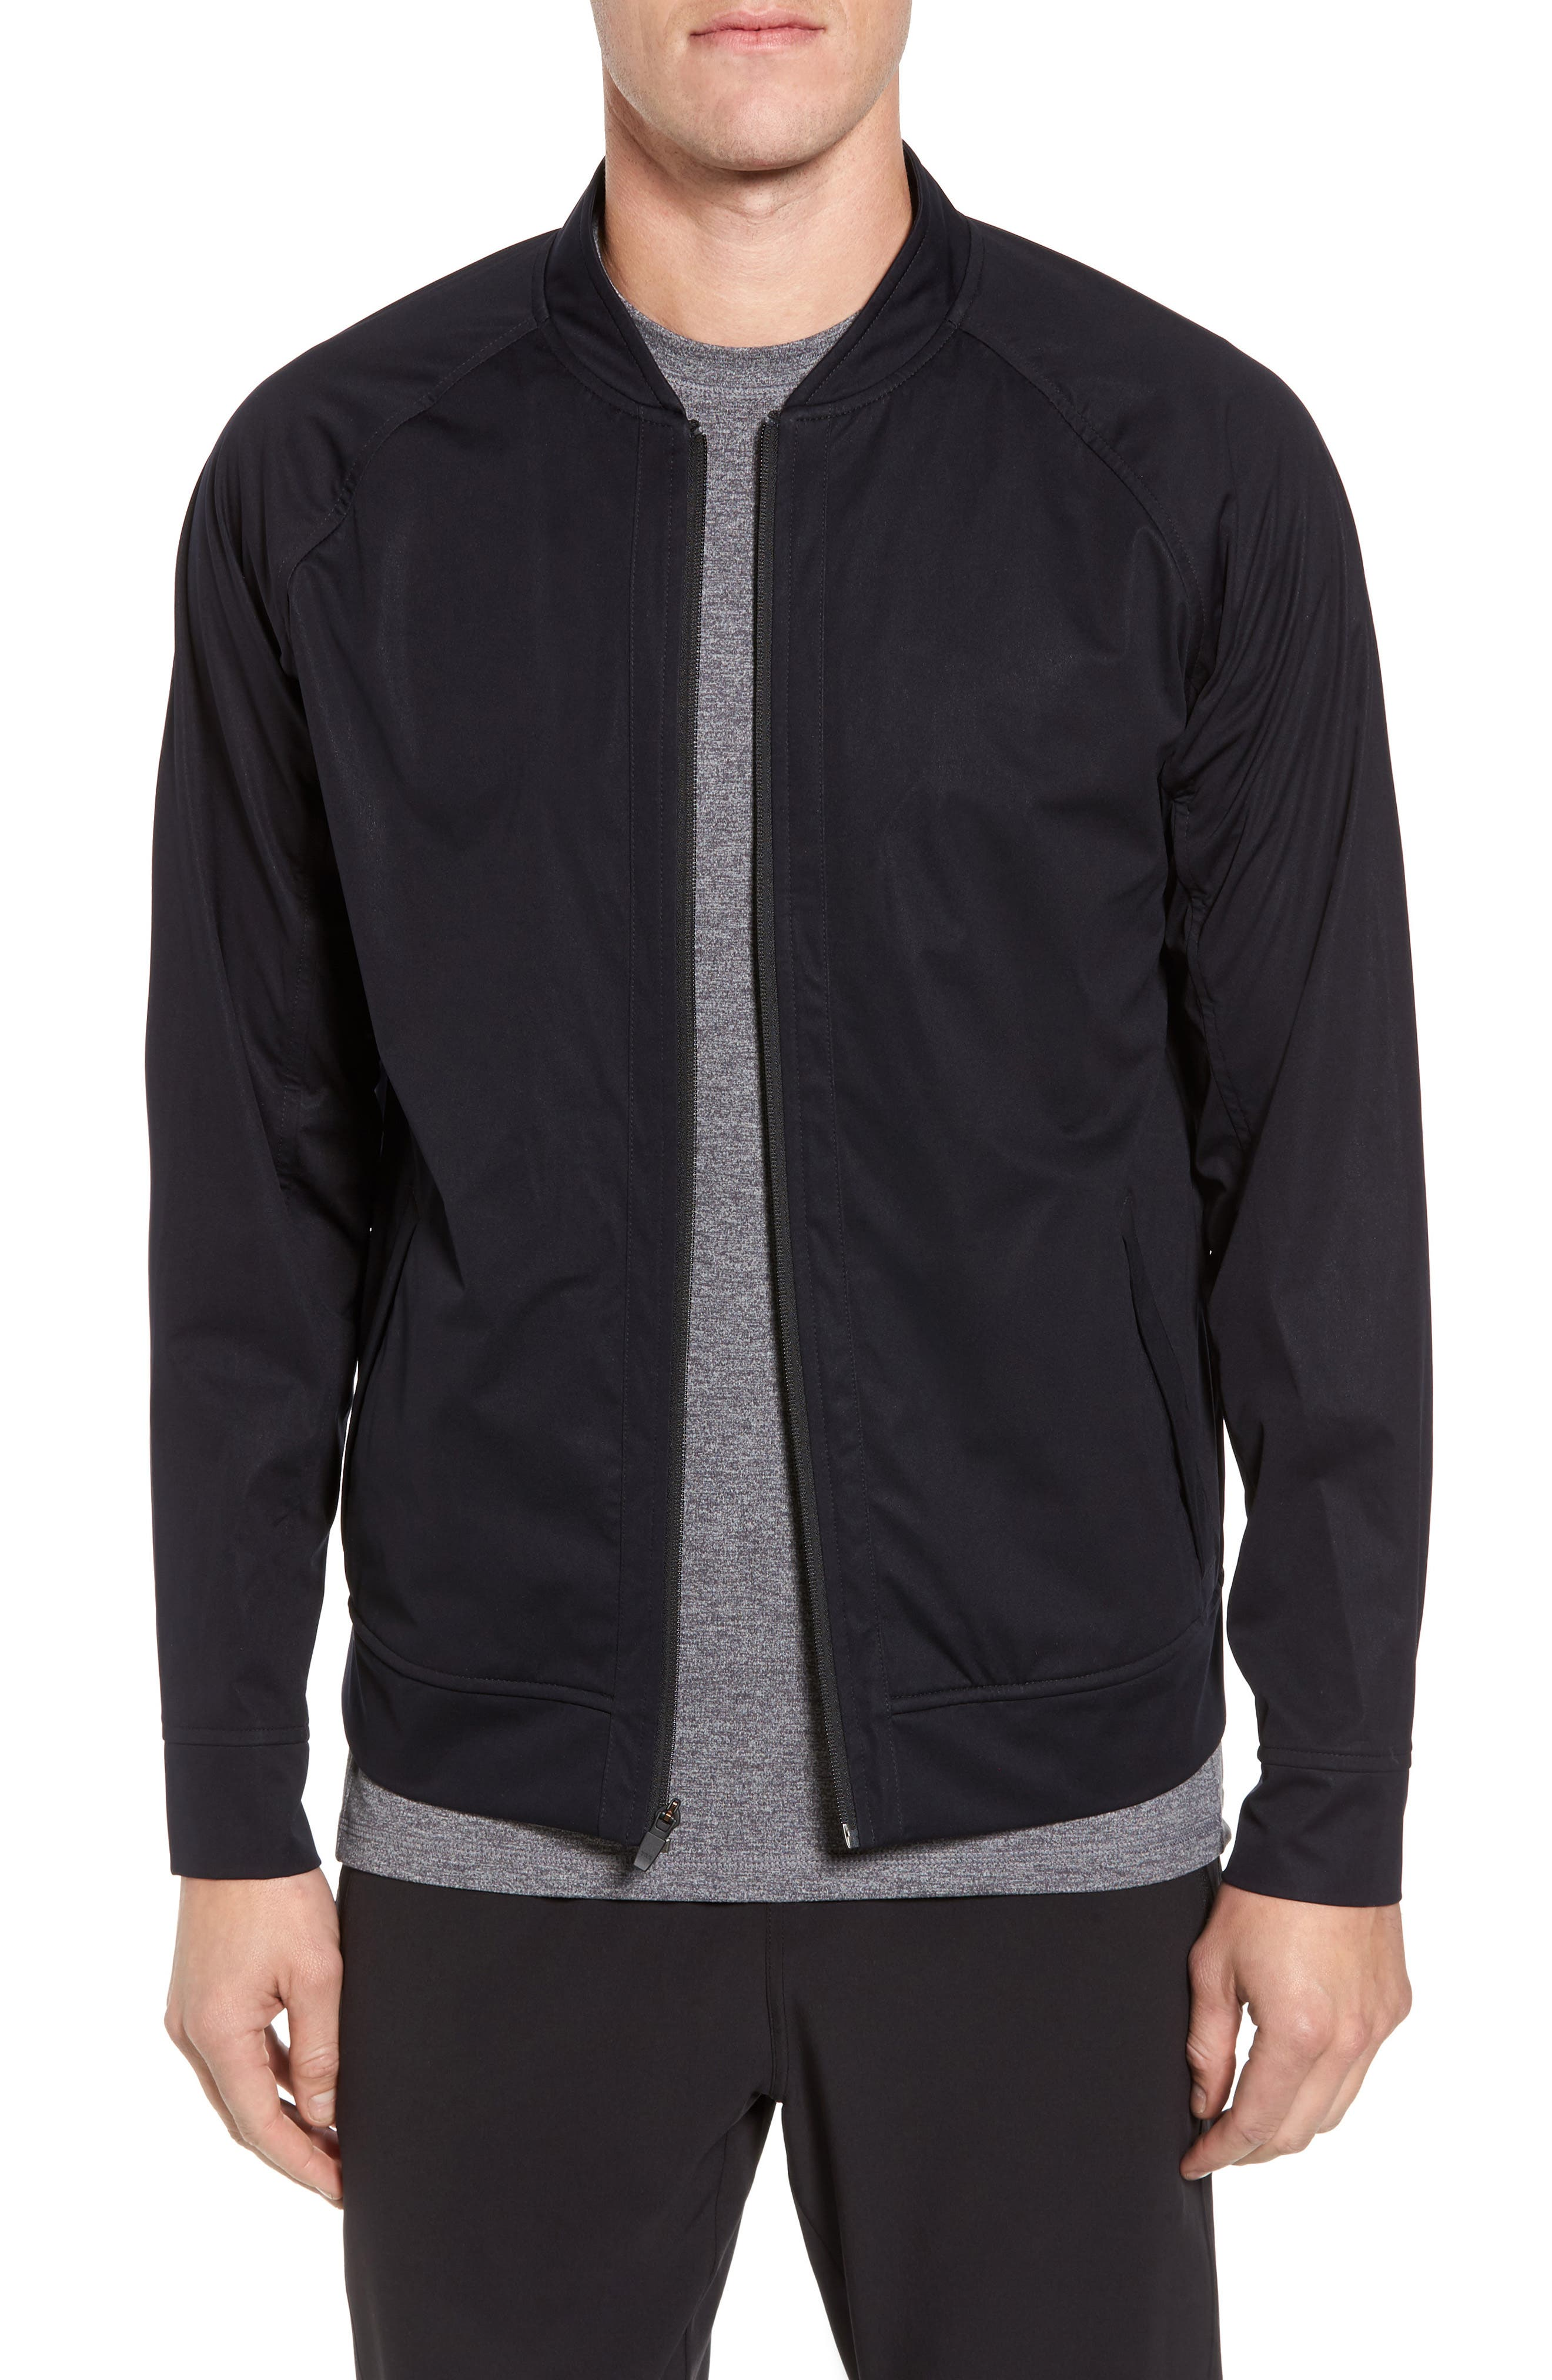 Softshell Bomber Jacket,                             Main thumbnail 1, color,                             Black